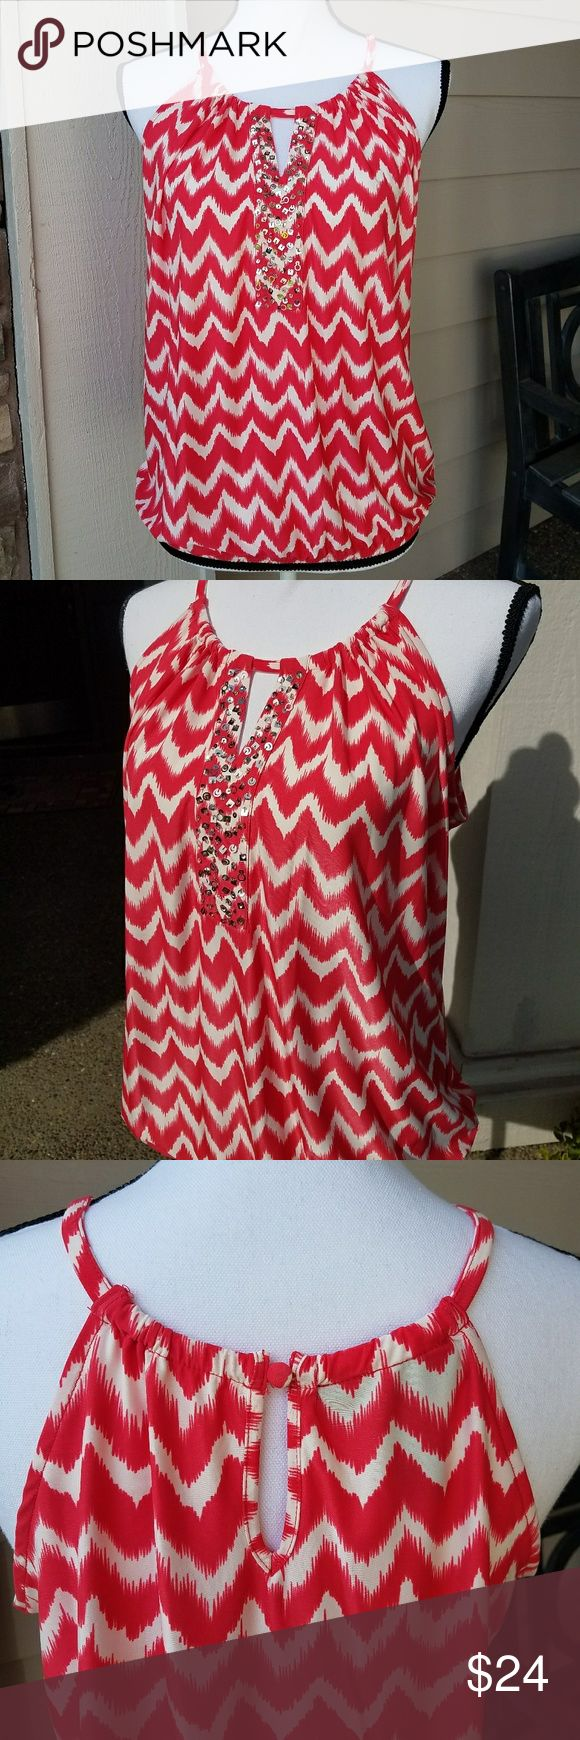 Macy's INC Halter Style Tank W/Sequins SZ MP Sleeveless, Red/White W/Chevron Type Print, Silver Sequins & Bead Detail, Keyhole @ Bust Area,Elastic at Waist, Button Closure at Back, Excellent Condition - I don't remember ever wearing it. All Sequins & Beads are Intact.  95% Polyester/ 5% Spandex INC International Concepts Tops Tank Tops